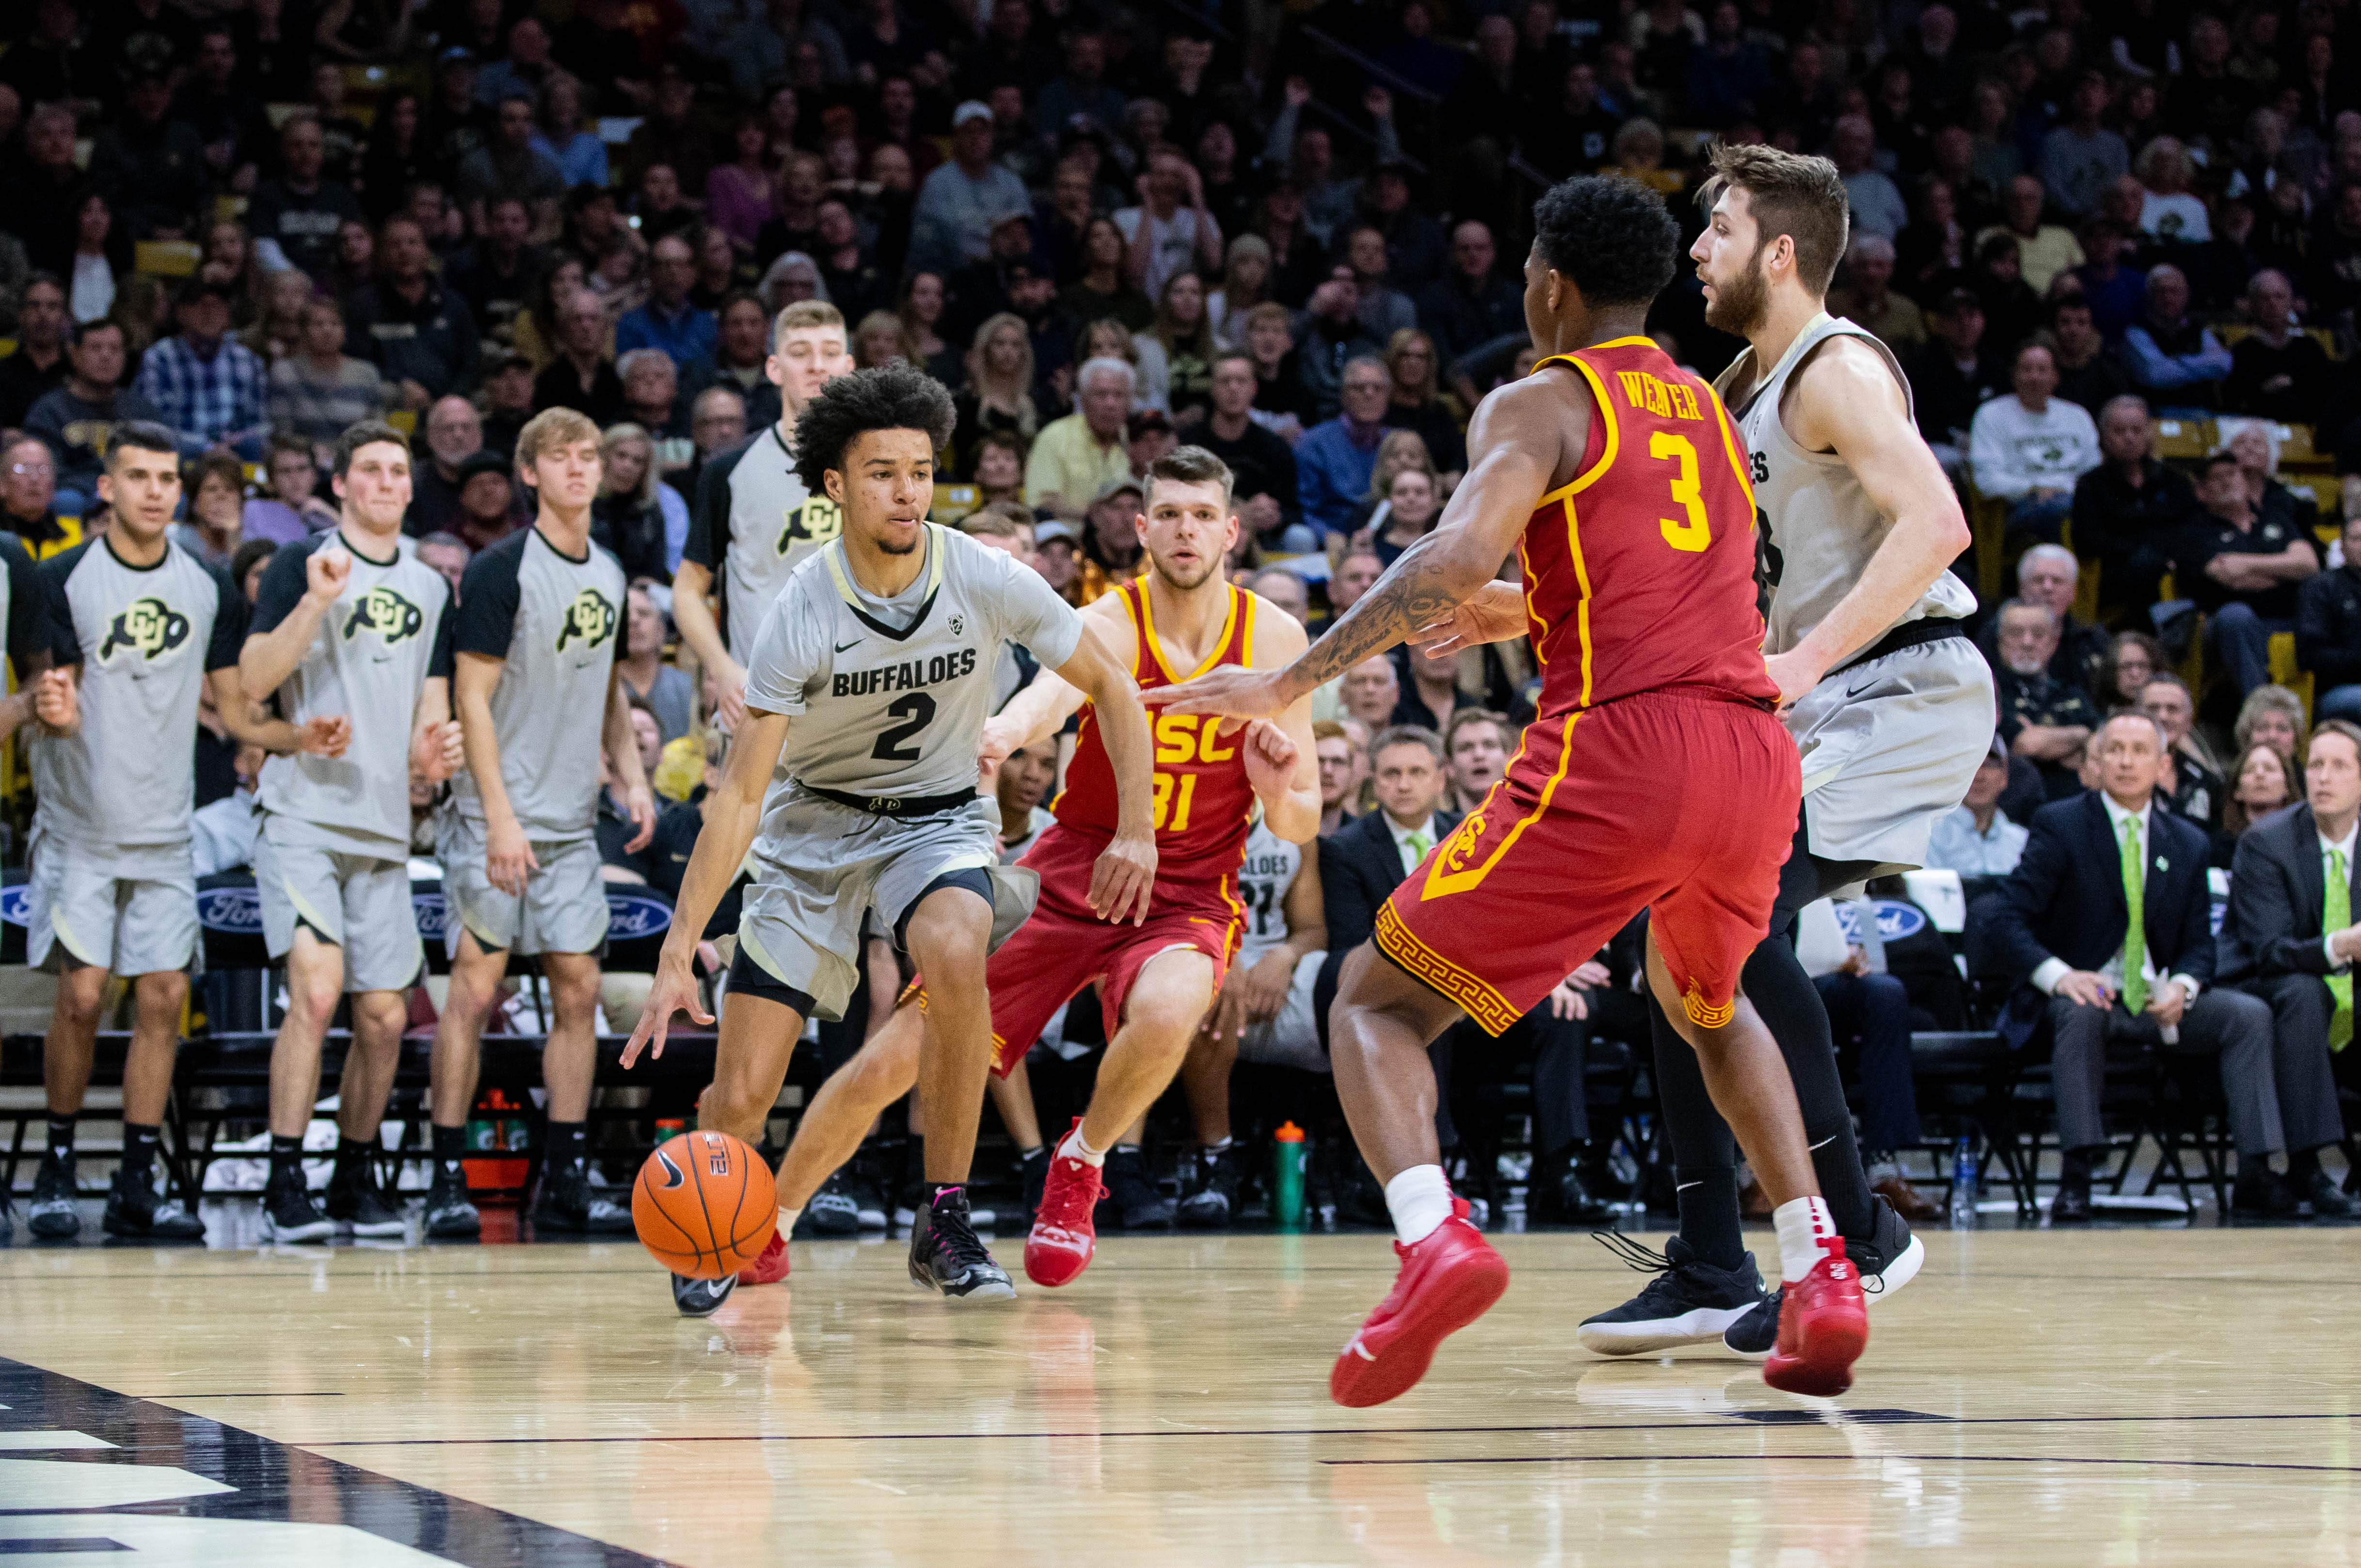 Colorado finishes regular season with 78-67 win over USC